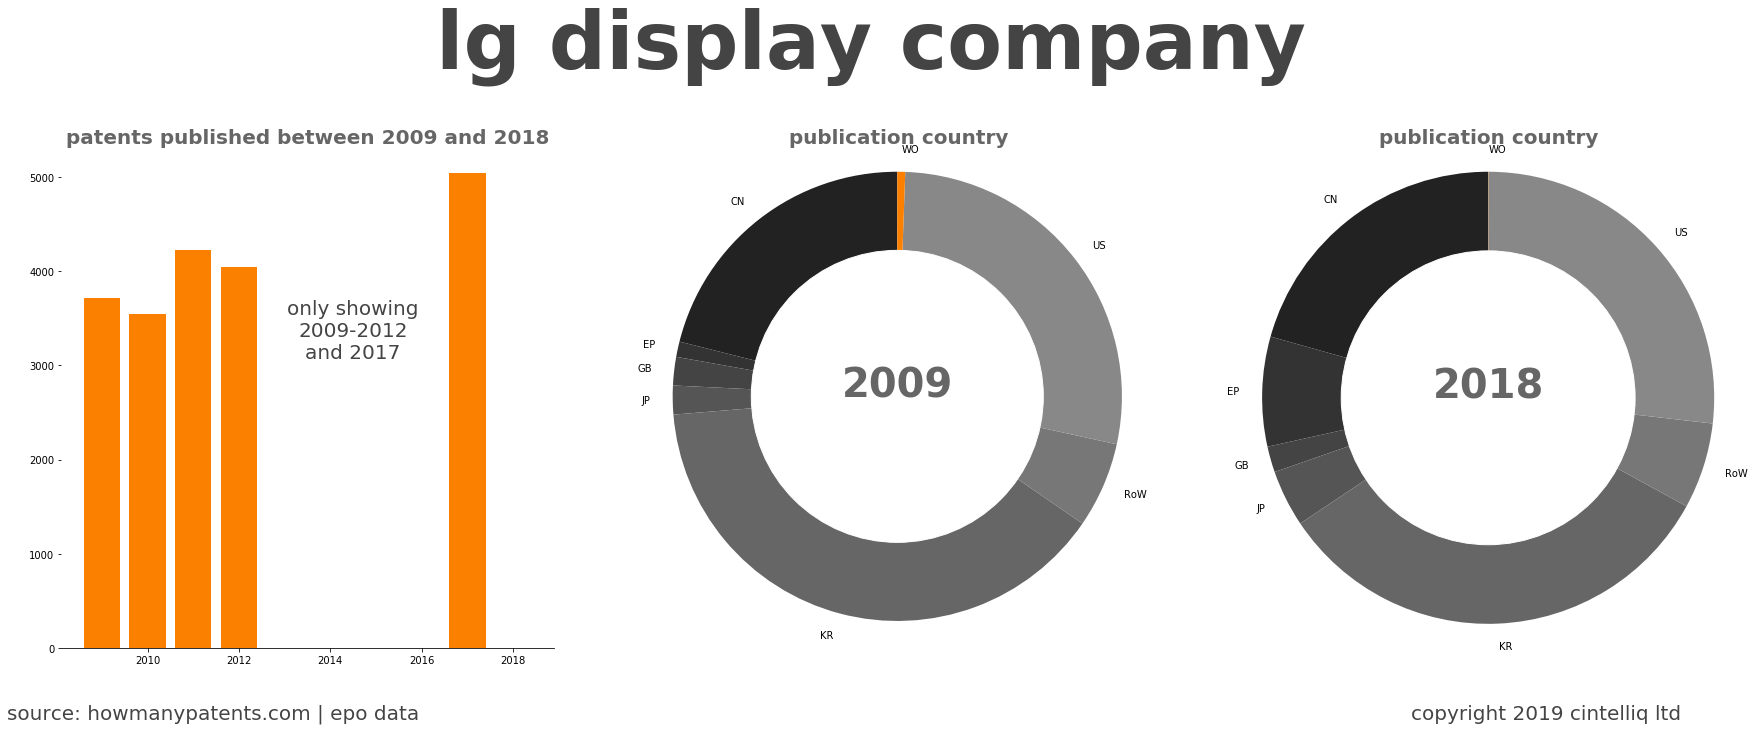 summary of patents for Lg Display Company